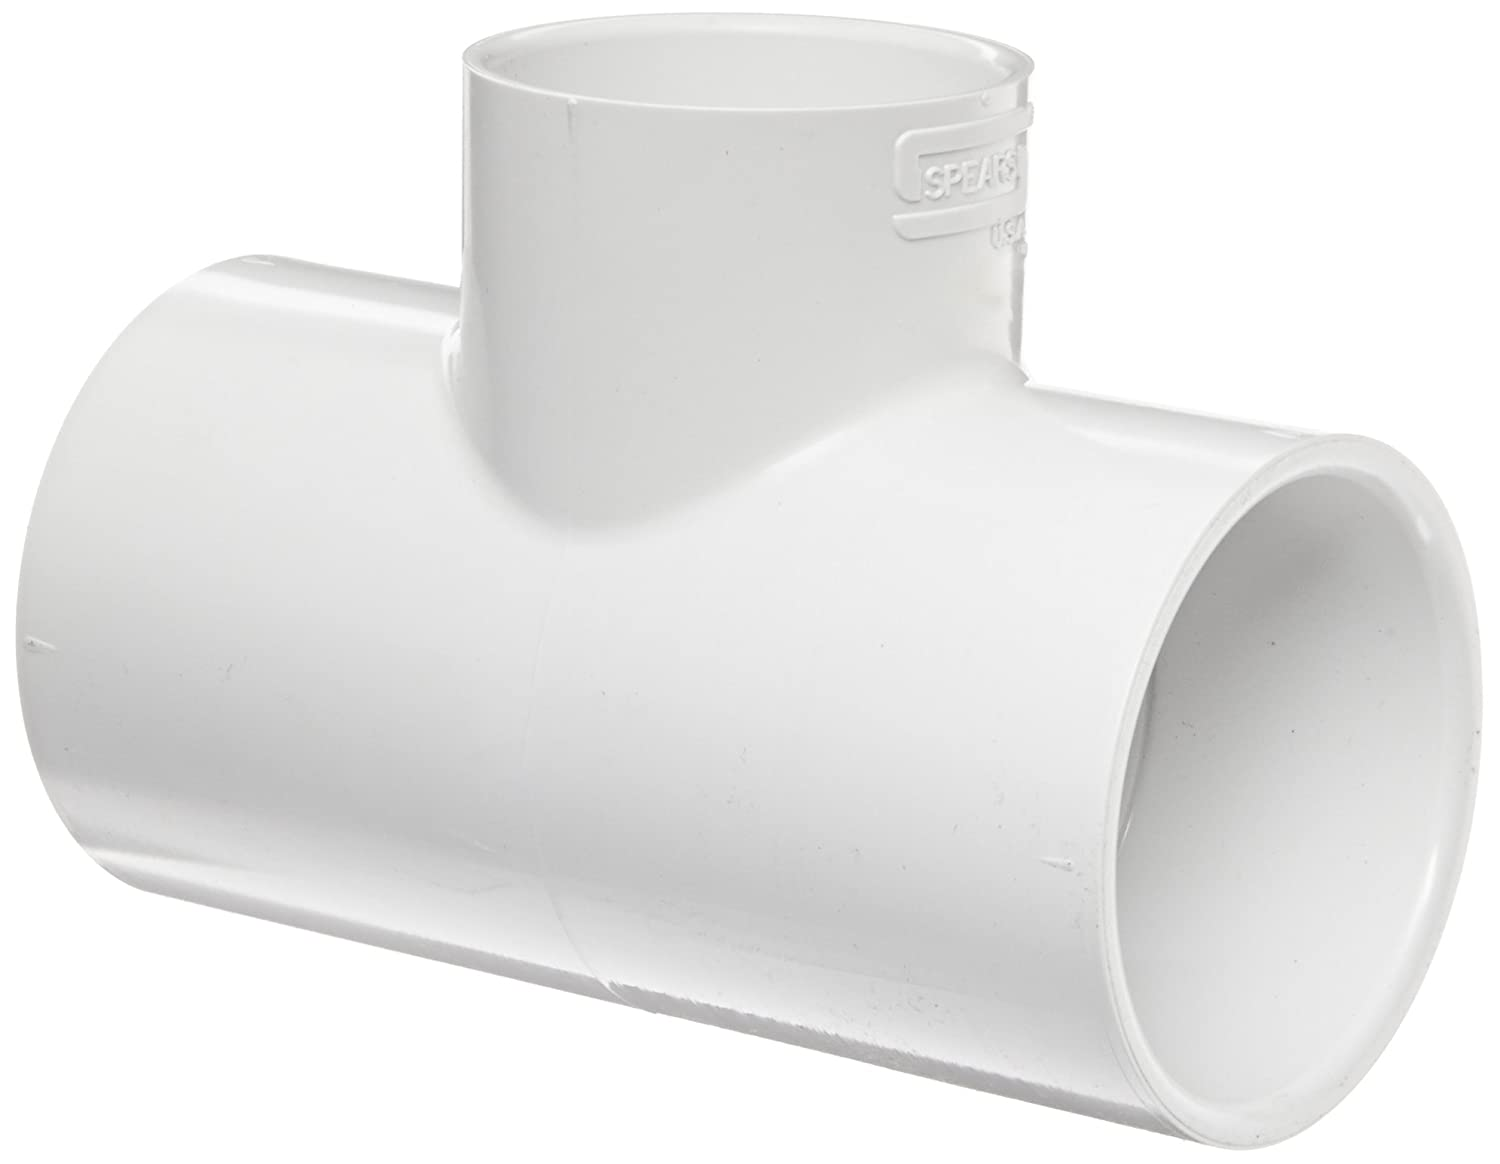 Spears 401 Series PVC Pipe Fitting Tee Schedule 40 White 3/4  Socket Industrial Pipe Fittings Amazon.com Industrial u0026 Scientific  sc 1 st  Amazon.com & Spears 401 Series PVC Pipe Fitting Tee Schedule 40 White 3/4 ...